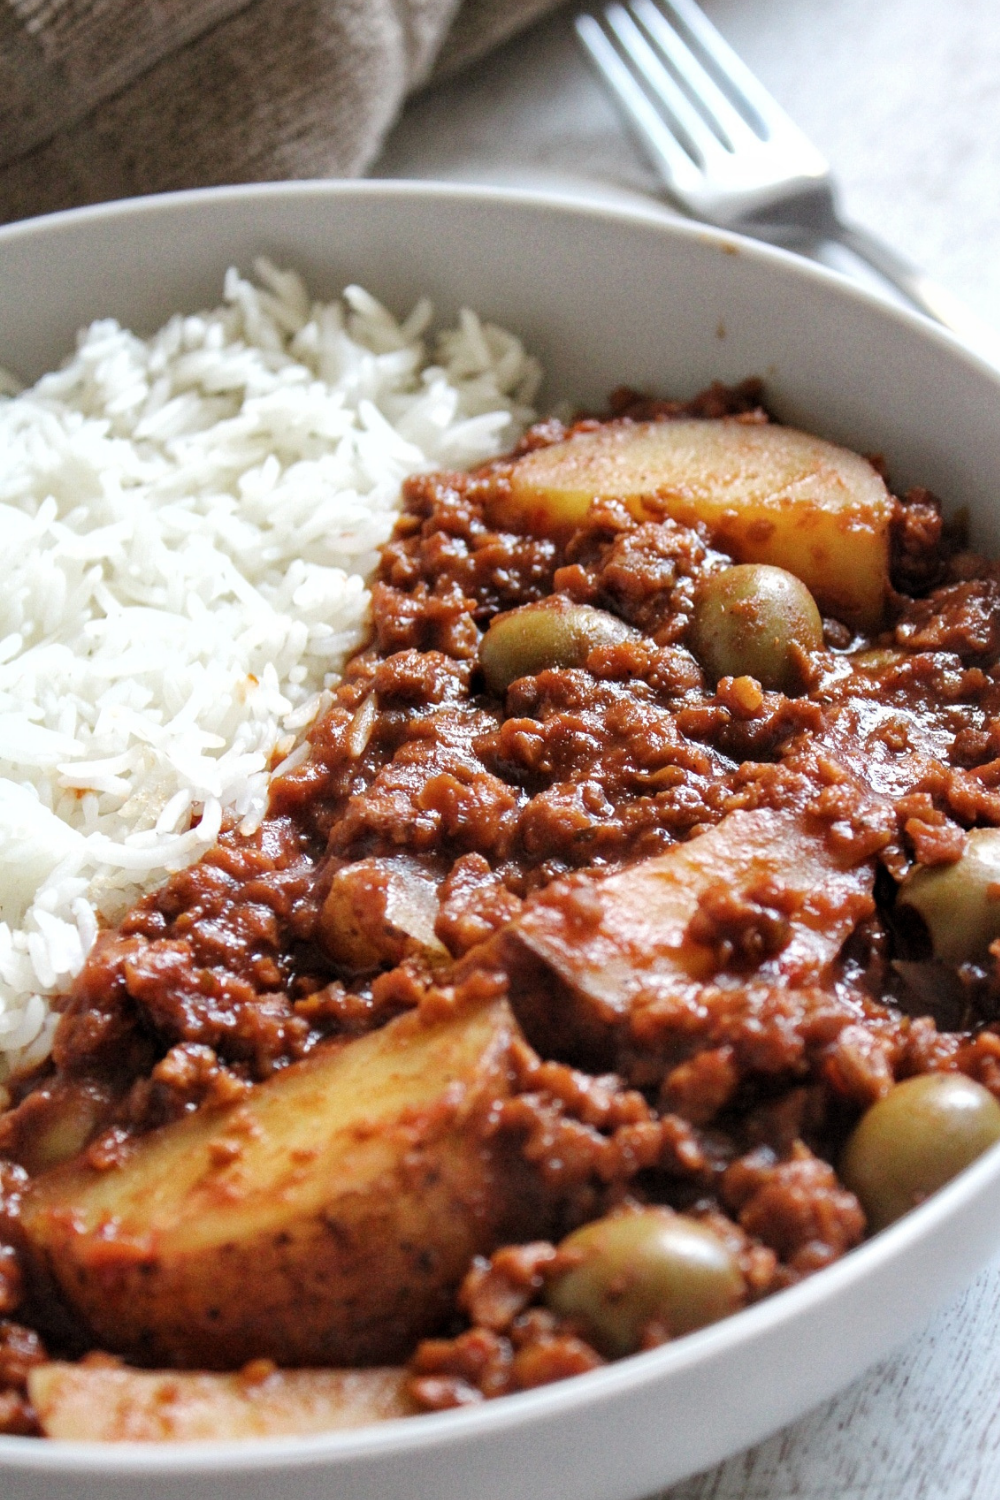 Vegan picadillo with potatoes and green Spanish olives with a side of white rice.